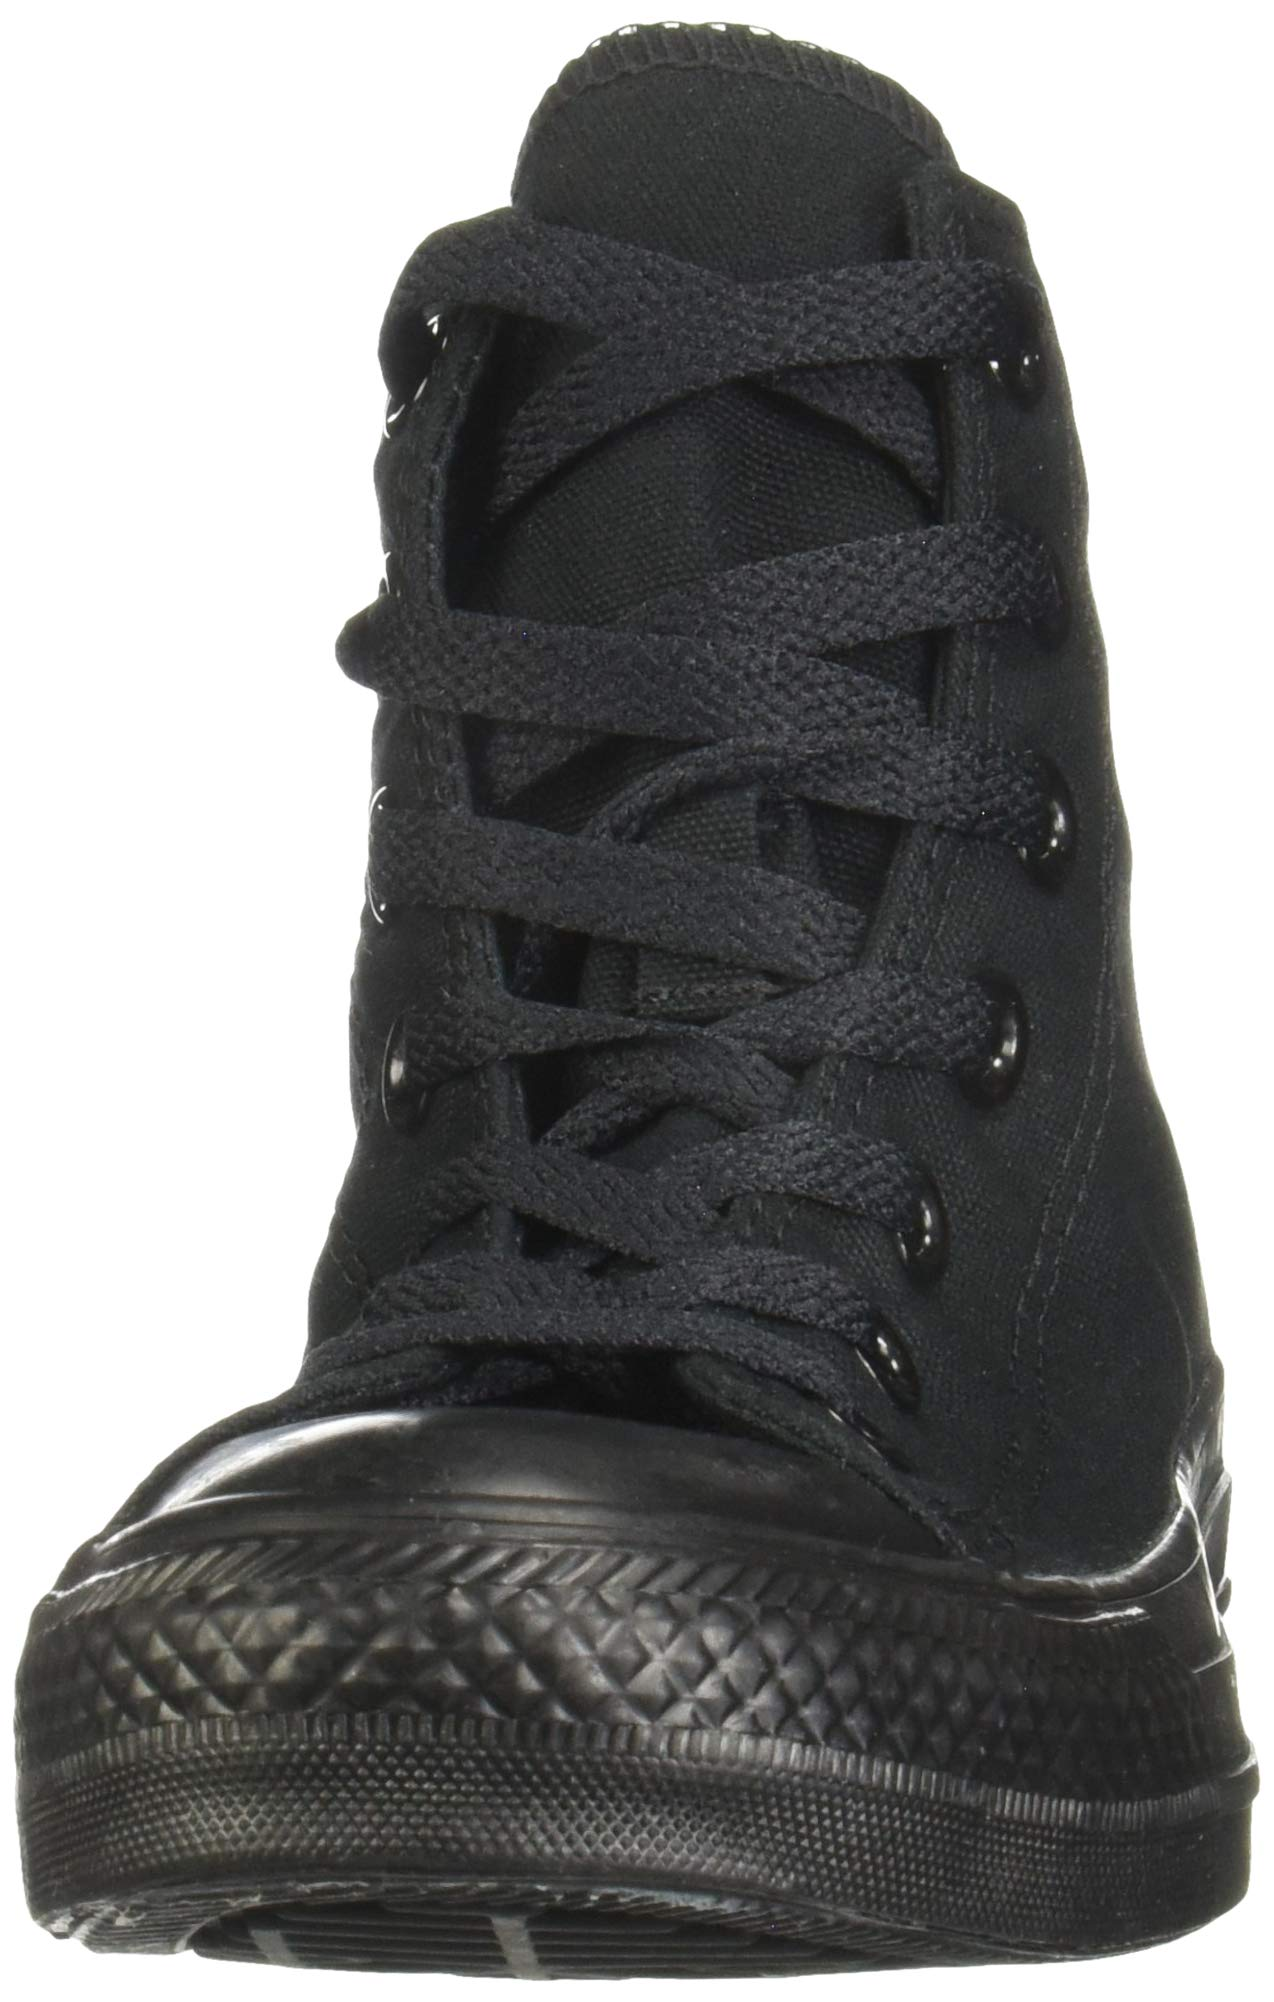 Converse Chuck Taylor All Star High Top Black/Black 9 D(M) US by Converse (Image #4)